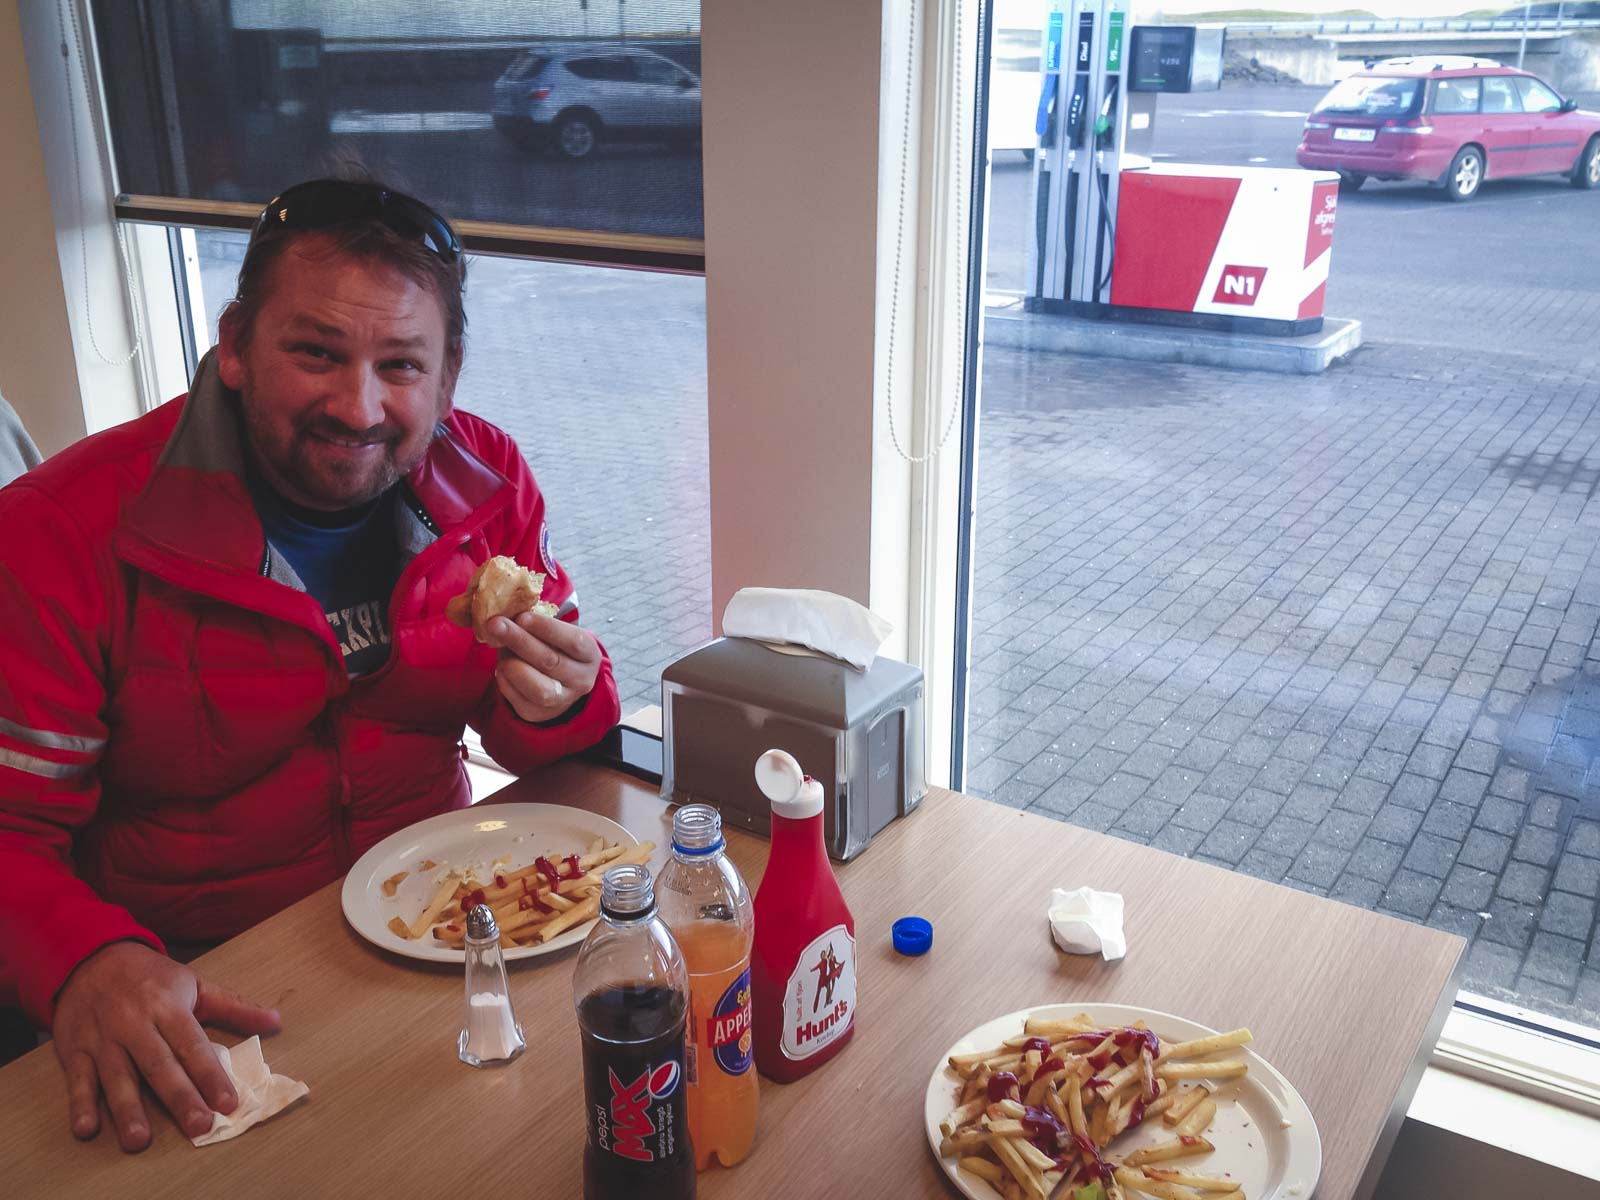 Eating Icelandic Hot Dogs in Iceland